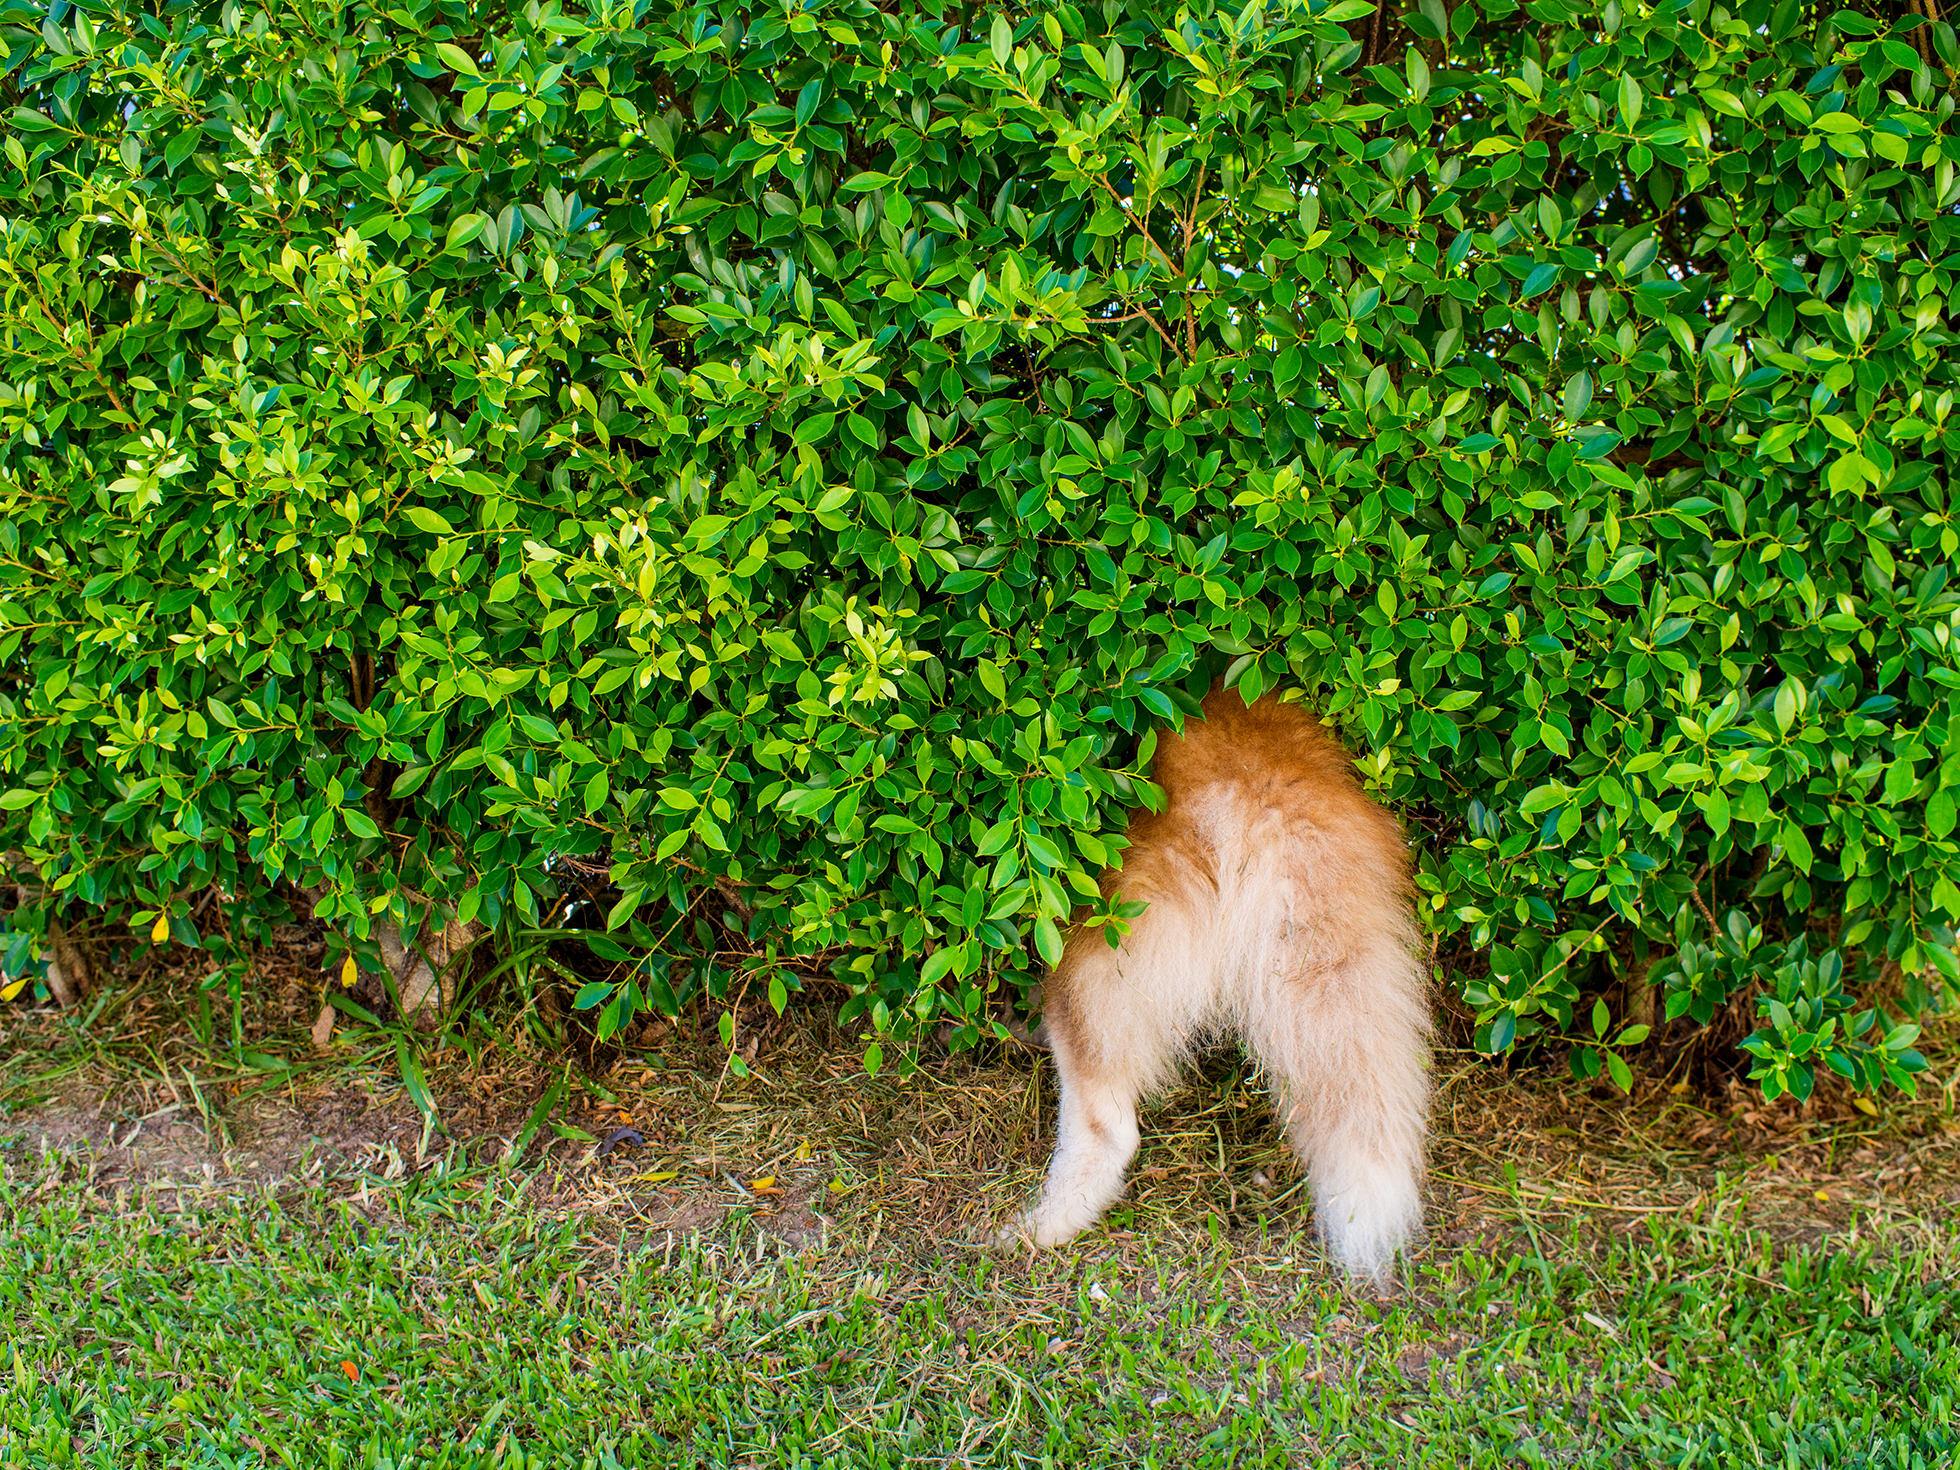 Tail of siberian husky peaking out from wall of bushes